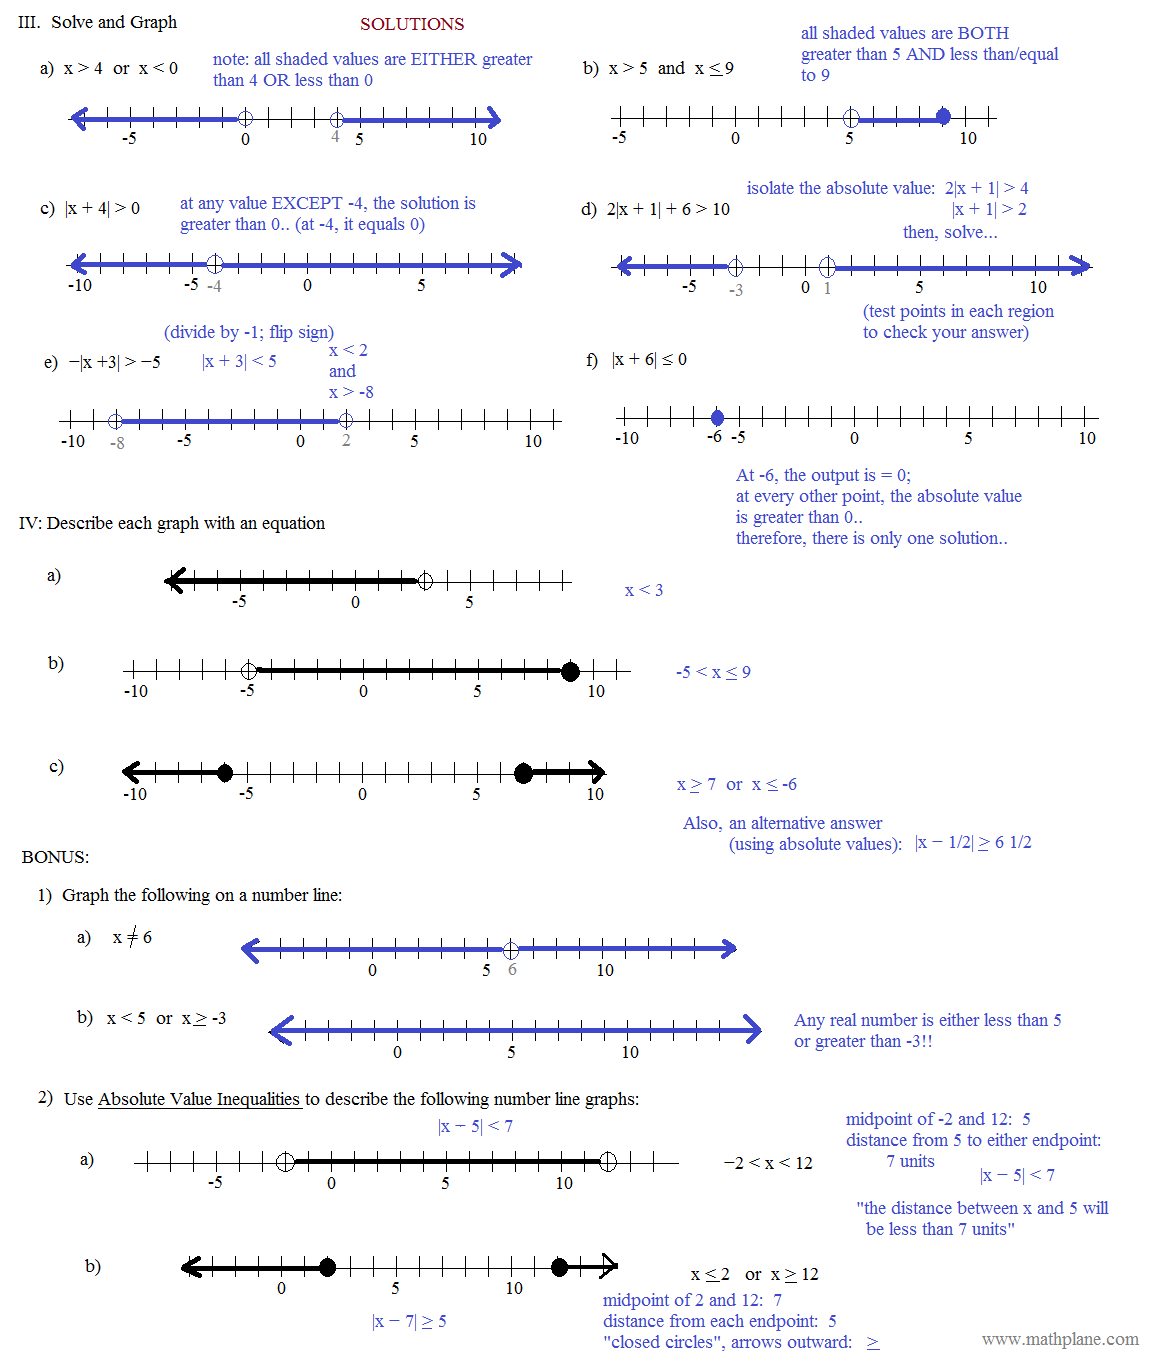 worksheet Graphing Inequalities Worksheet graphing inequalities on a number line worksheet rupsucks worksheets math plane absolute value and quiz values